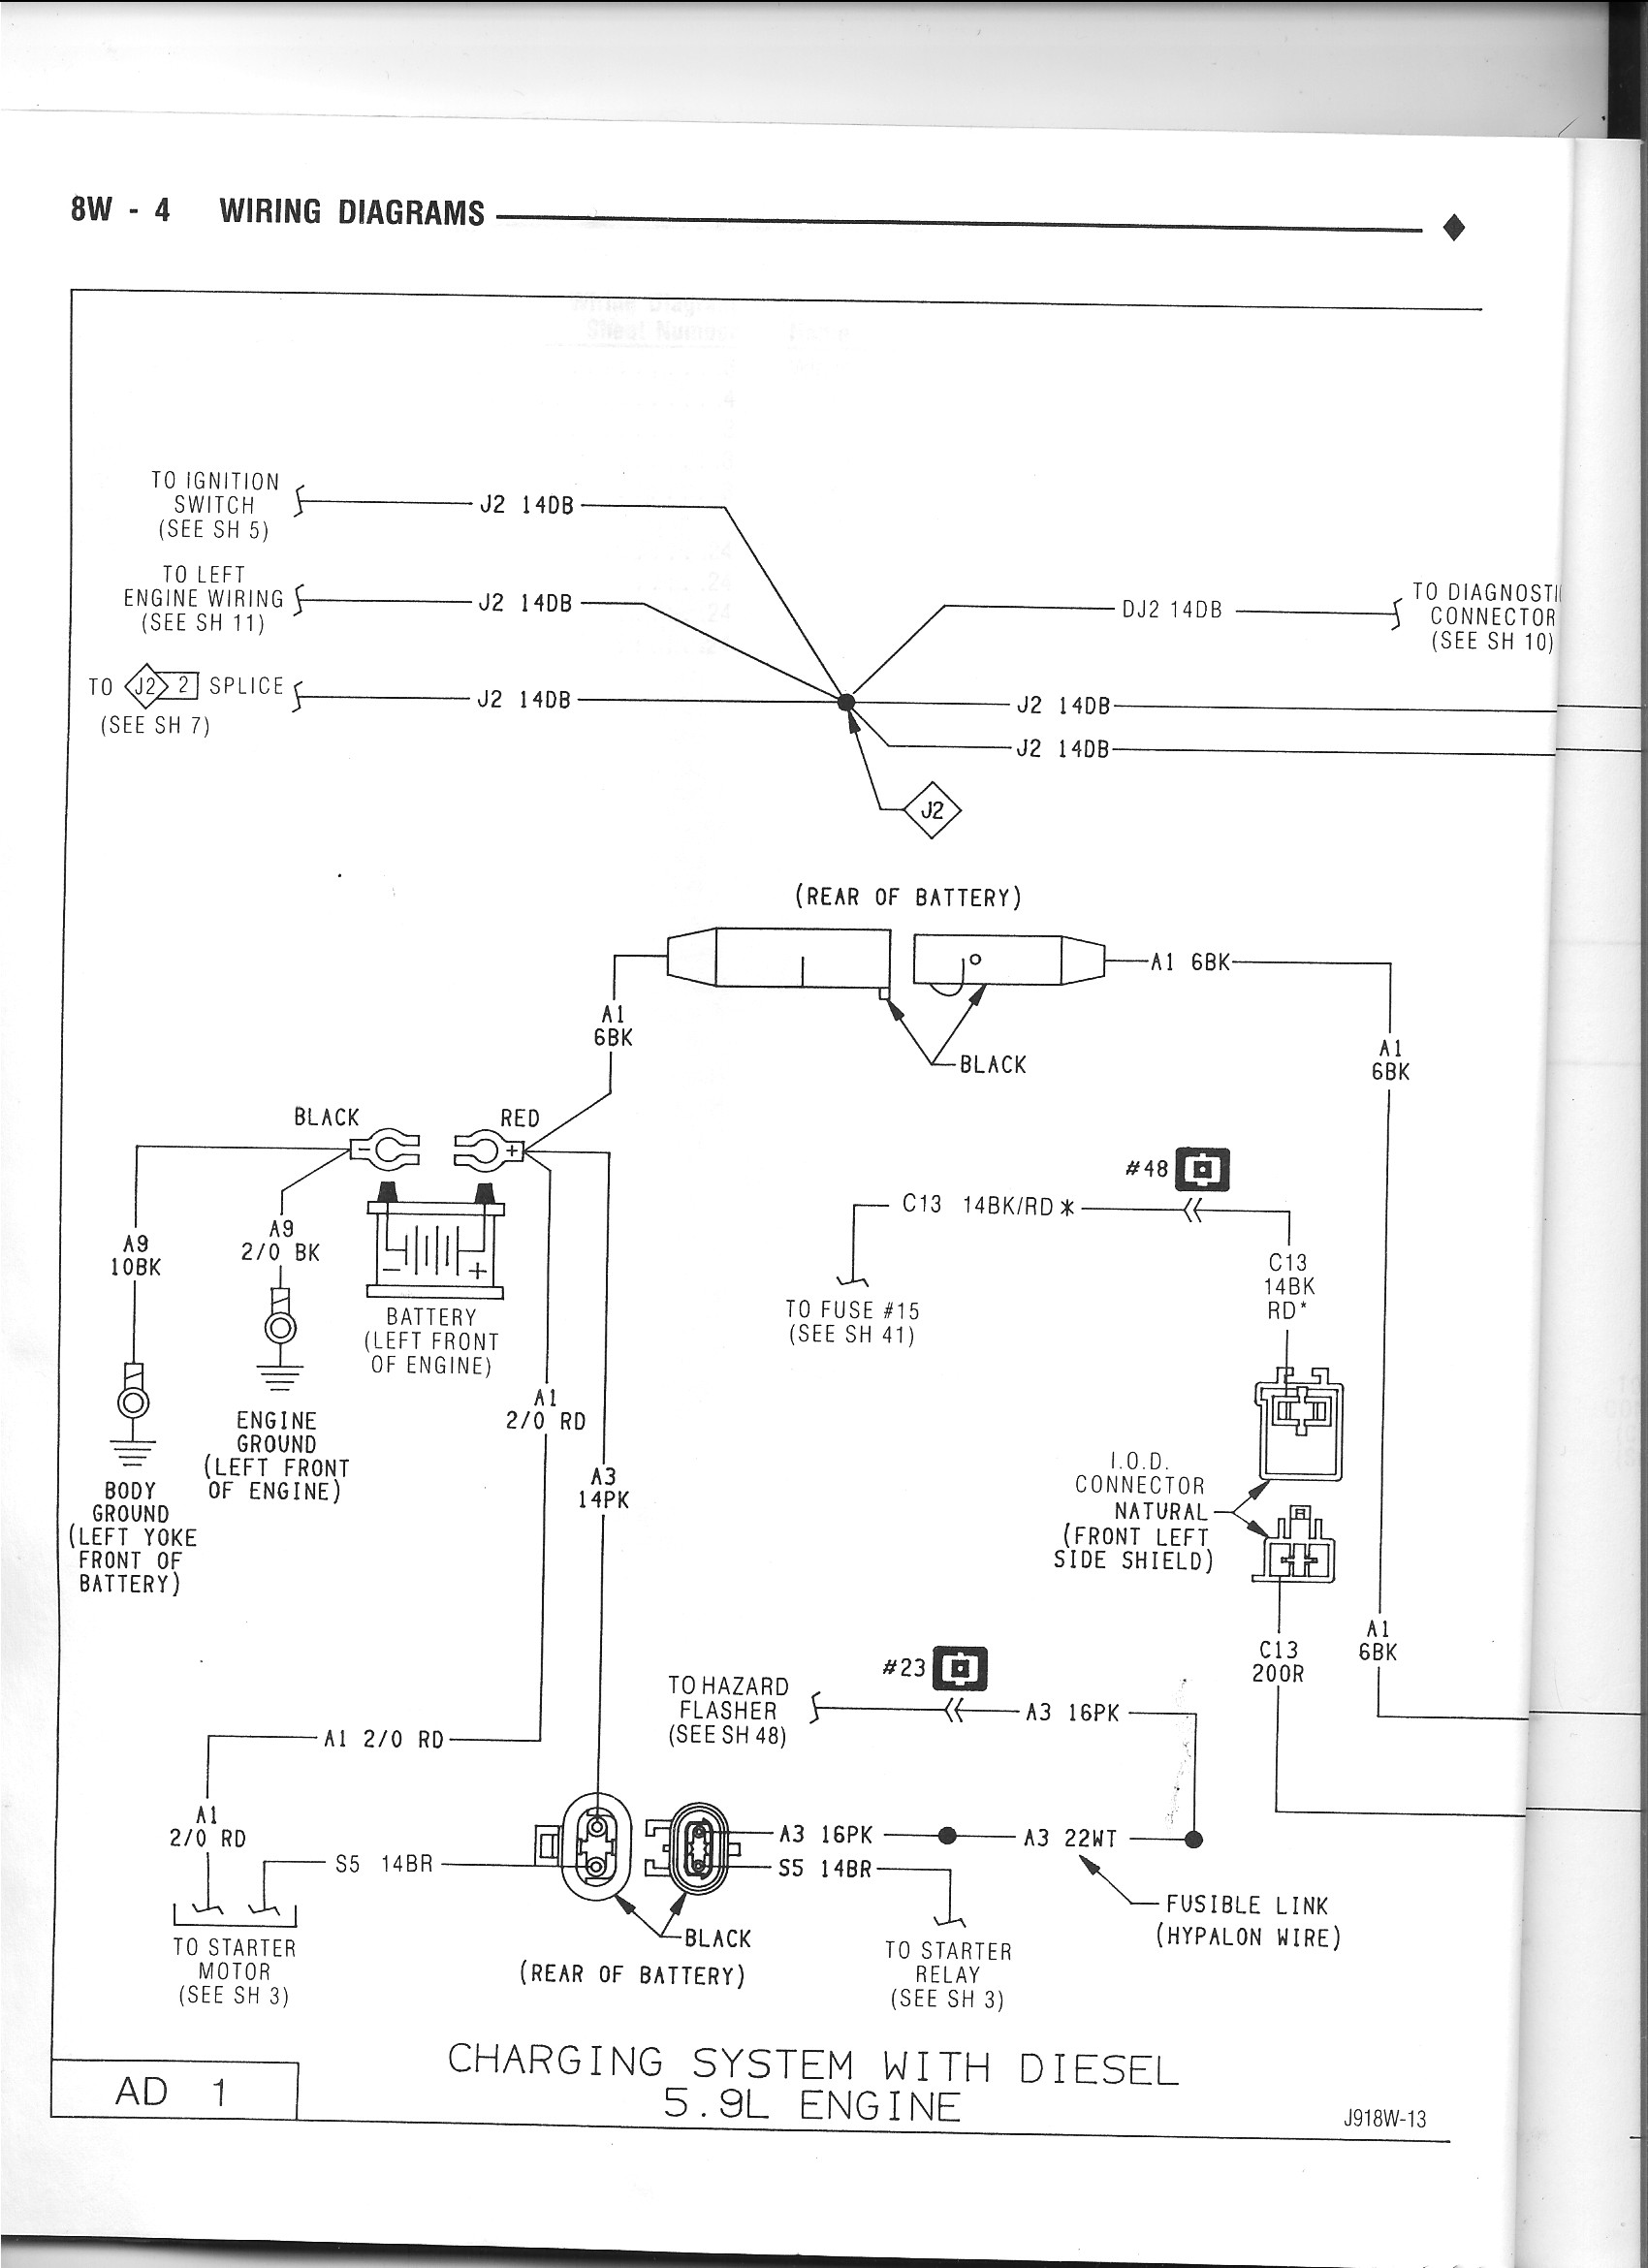 1994 dodge ram 2500 wiring diagram  | 960 x 641